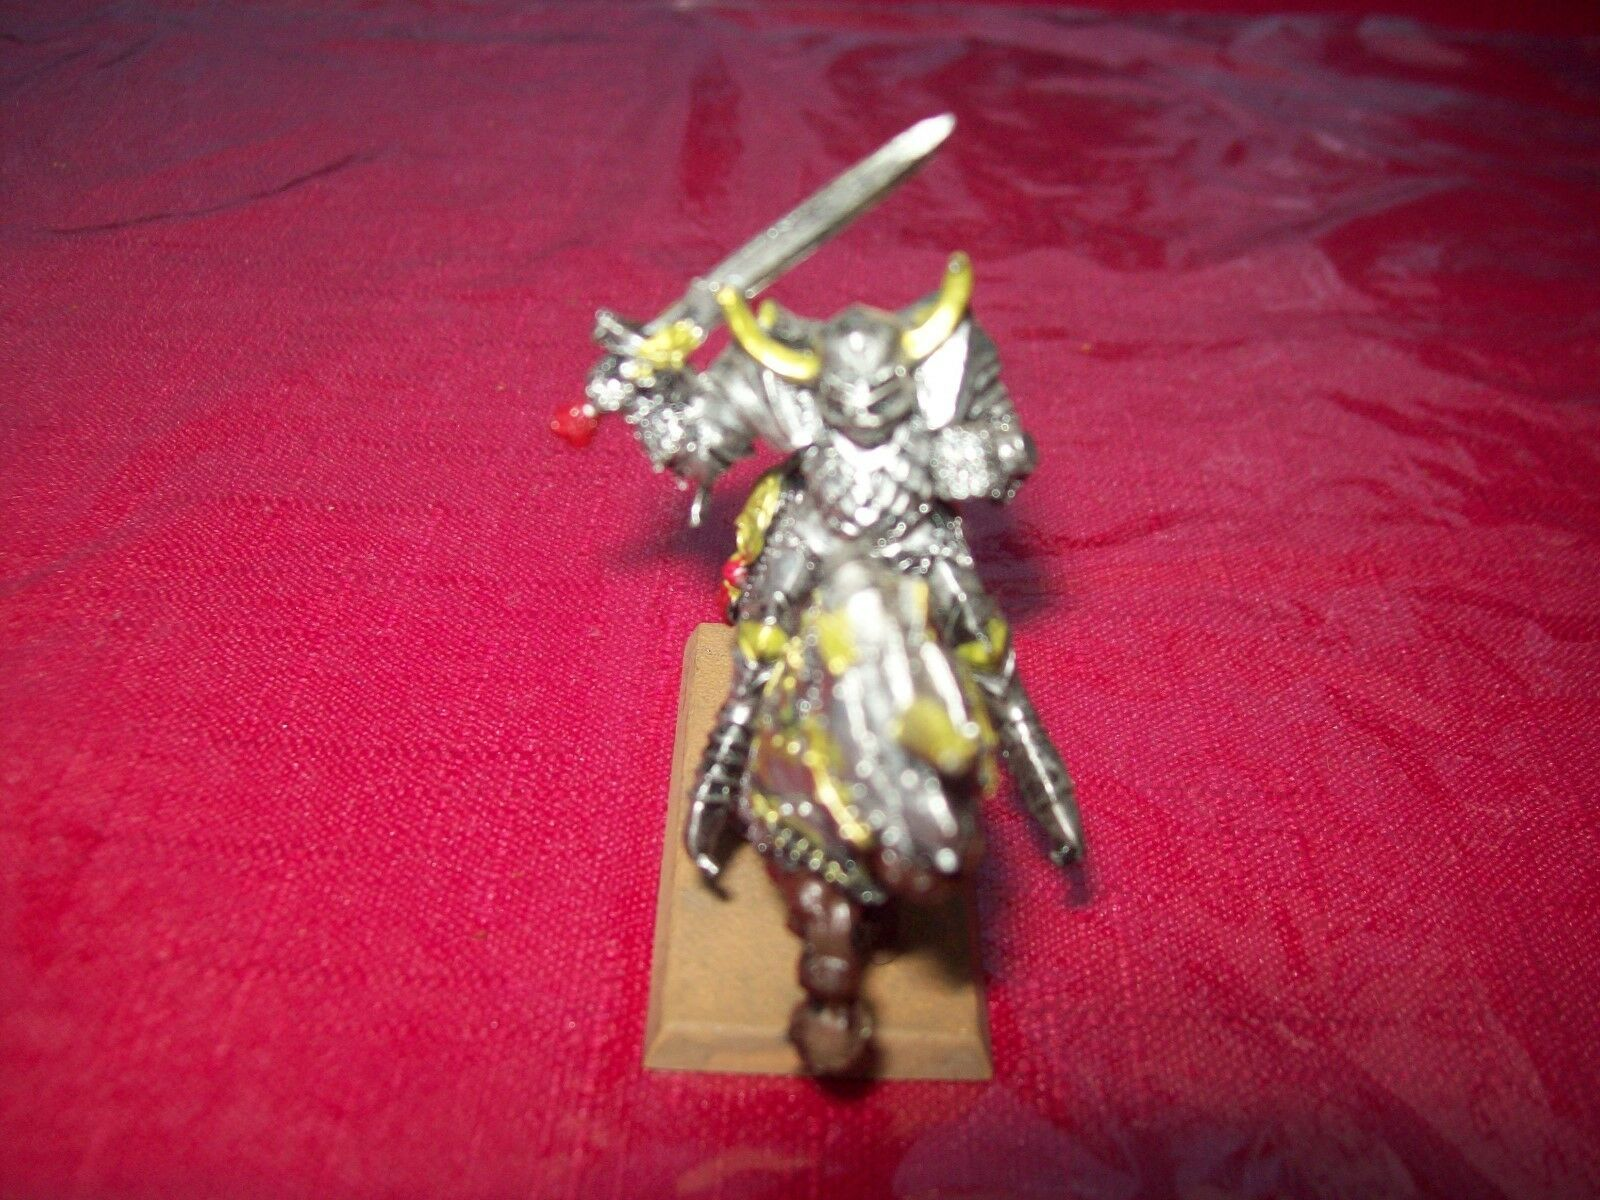 Warhammer Realm of Chaos Knight with Sword